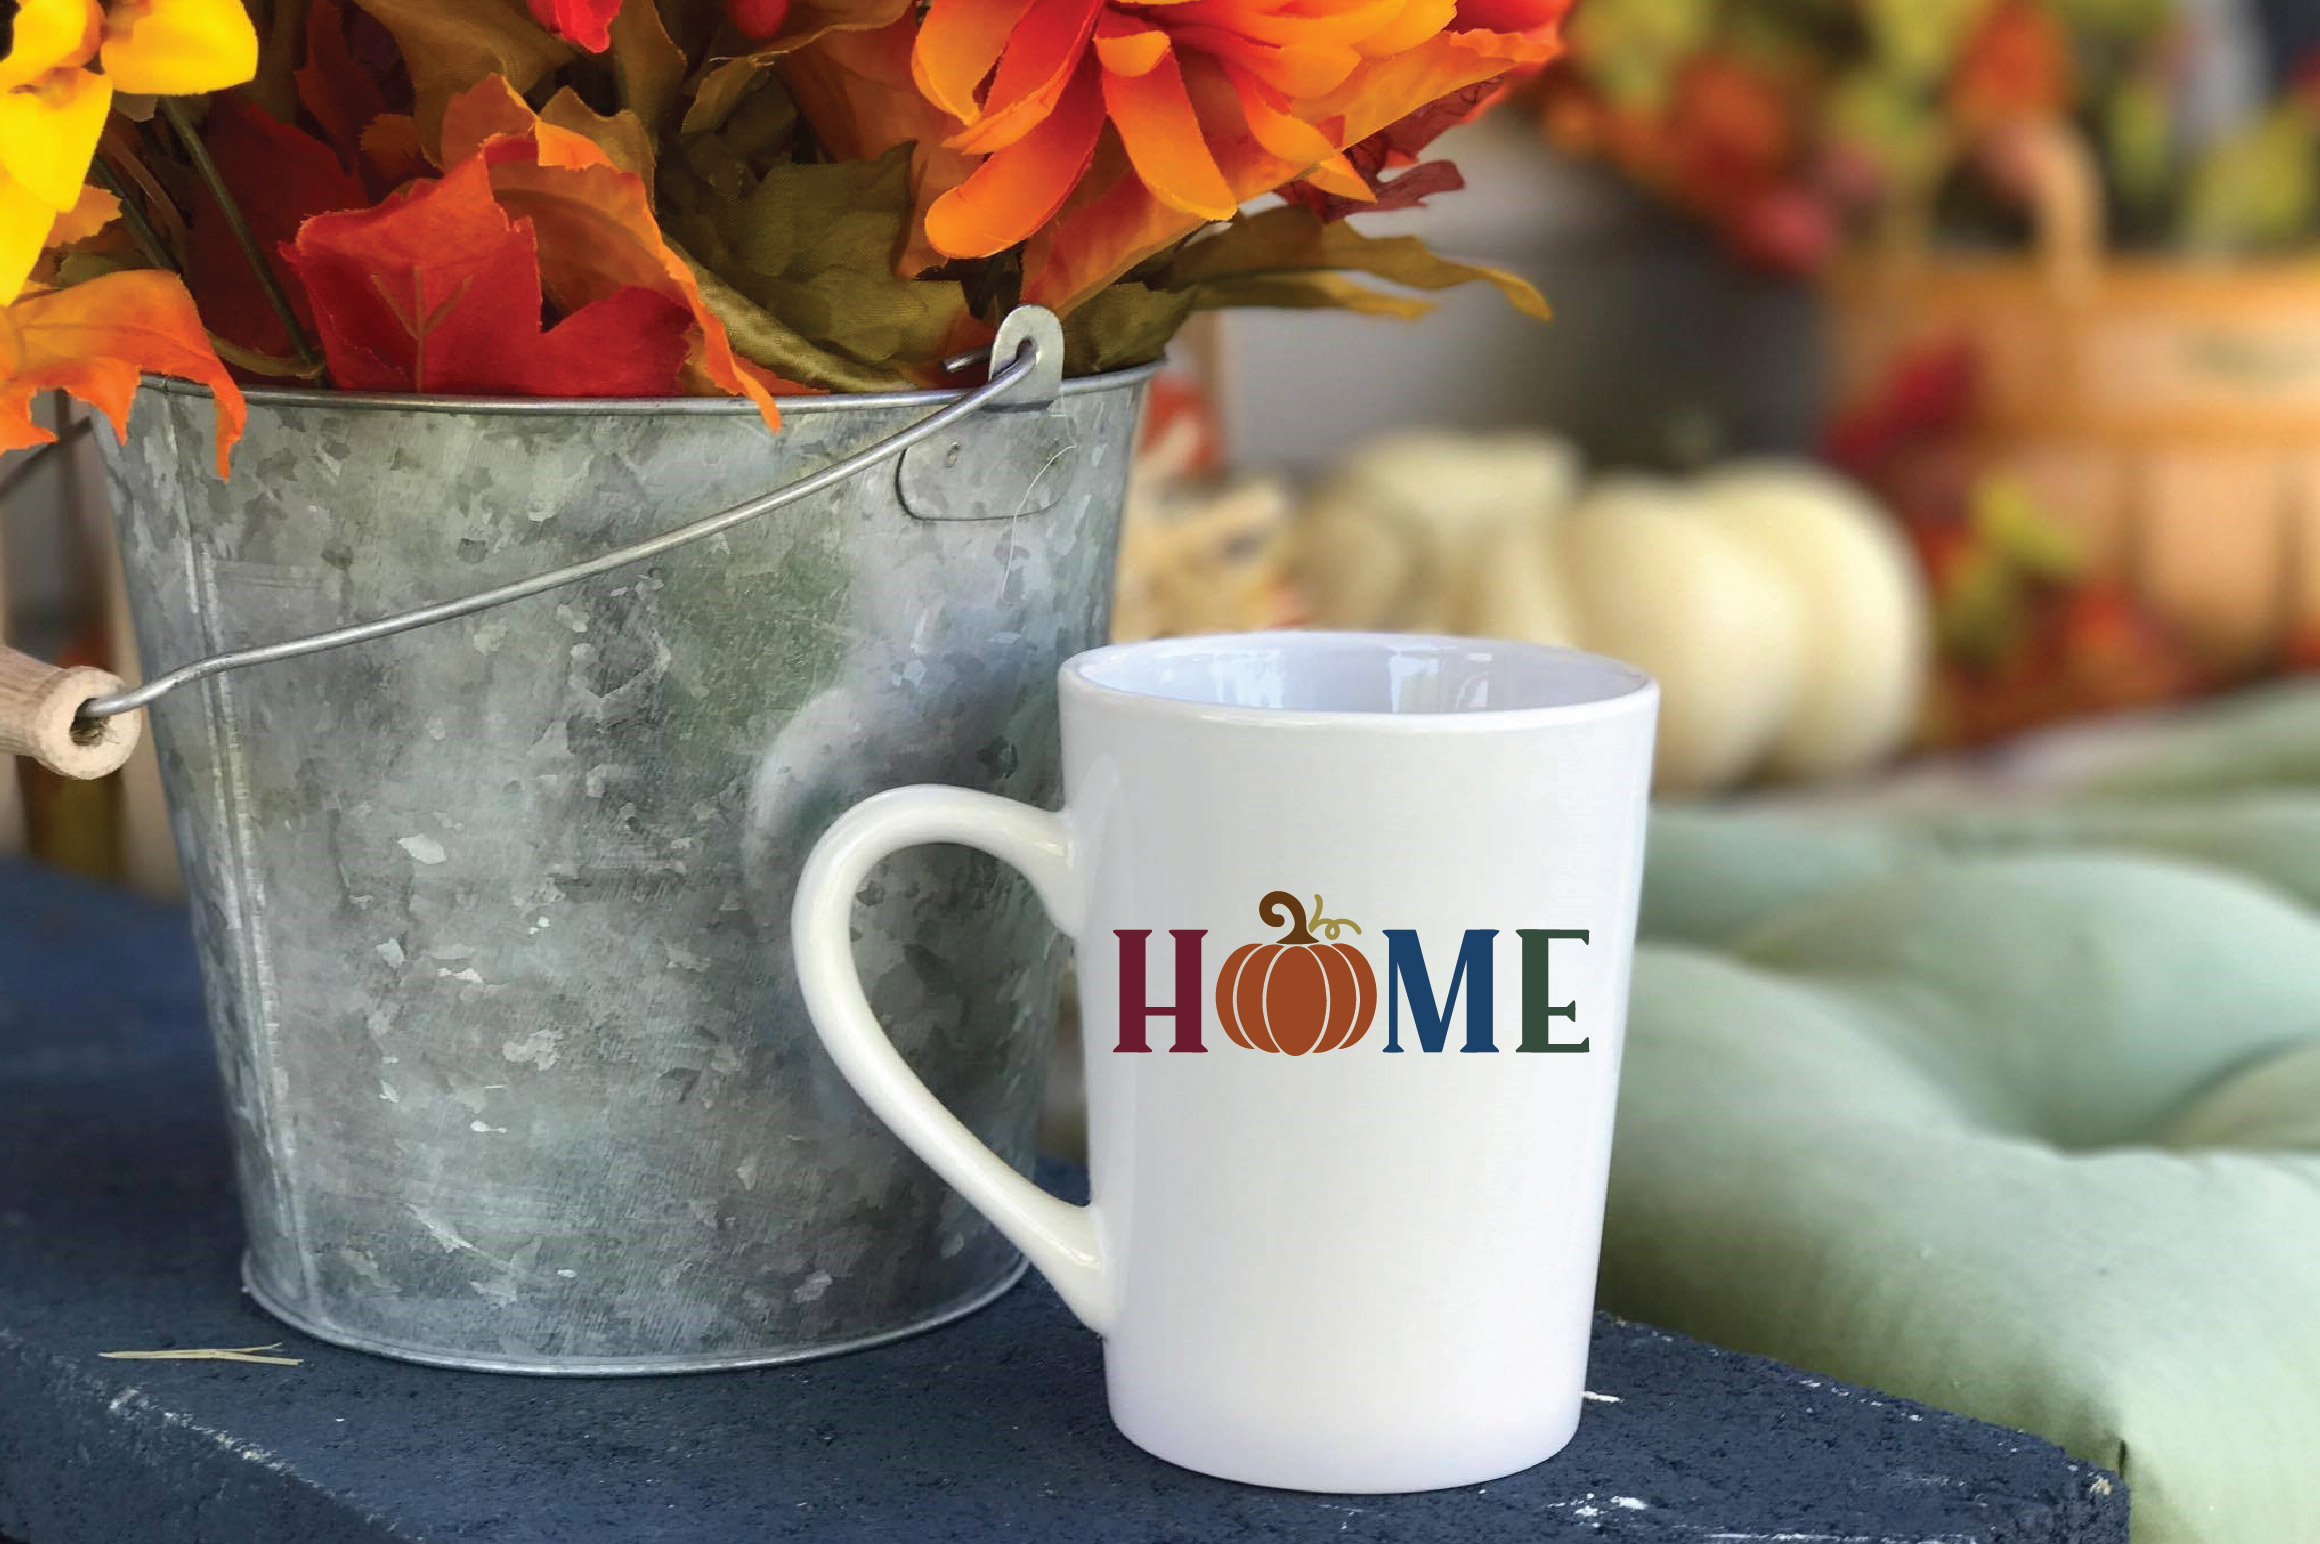 Home SVG Cut File - Fall Pumpkin SVG example image 6